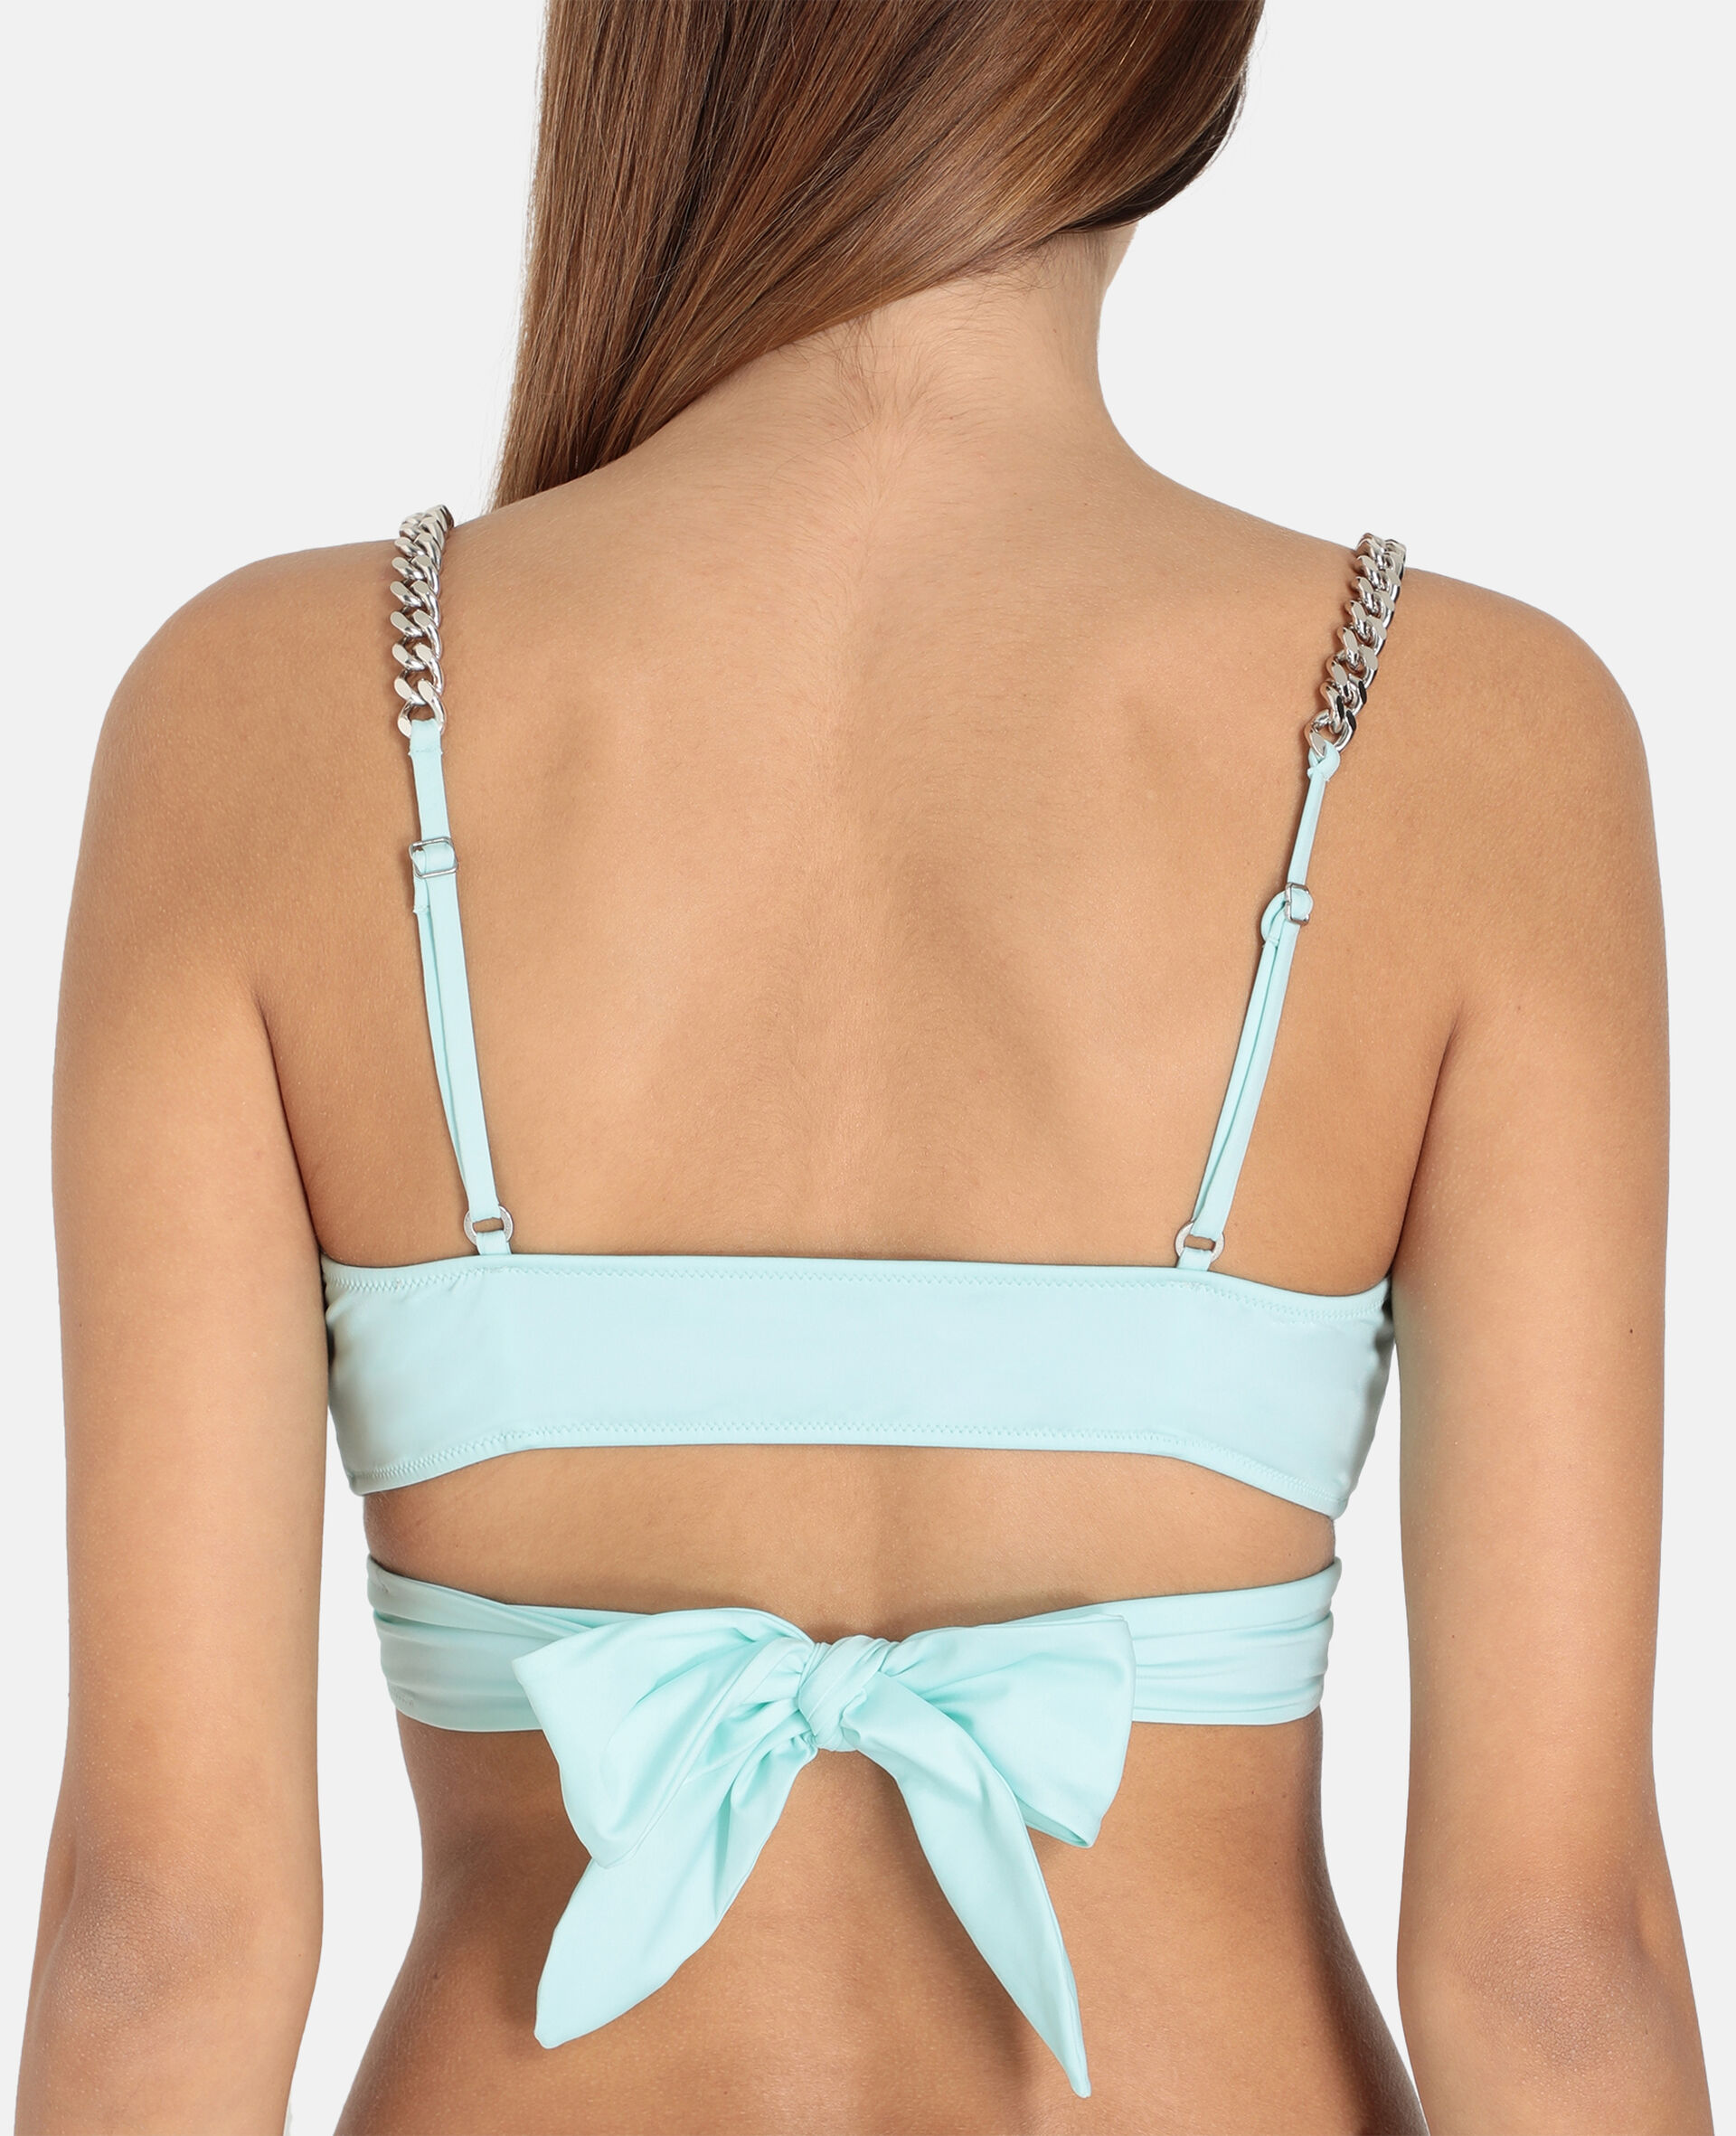 Iconic Chain Wrap Top-Mint-large image number 2